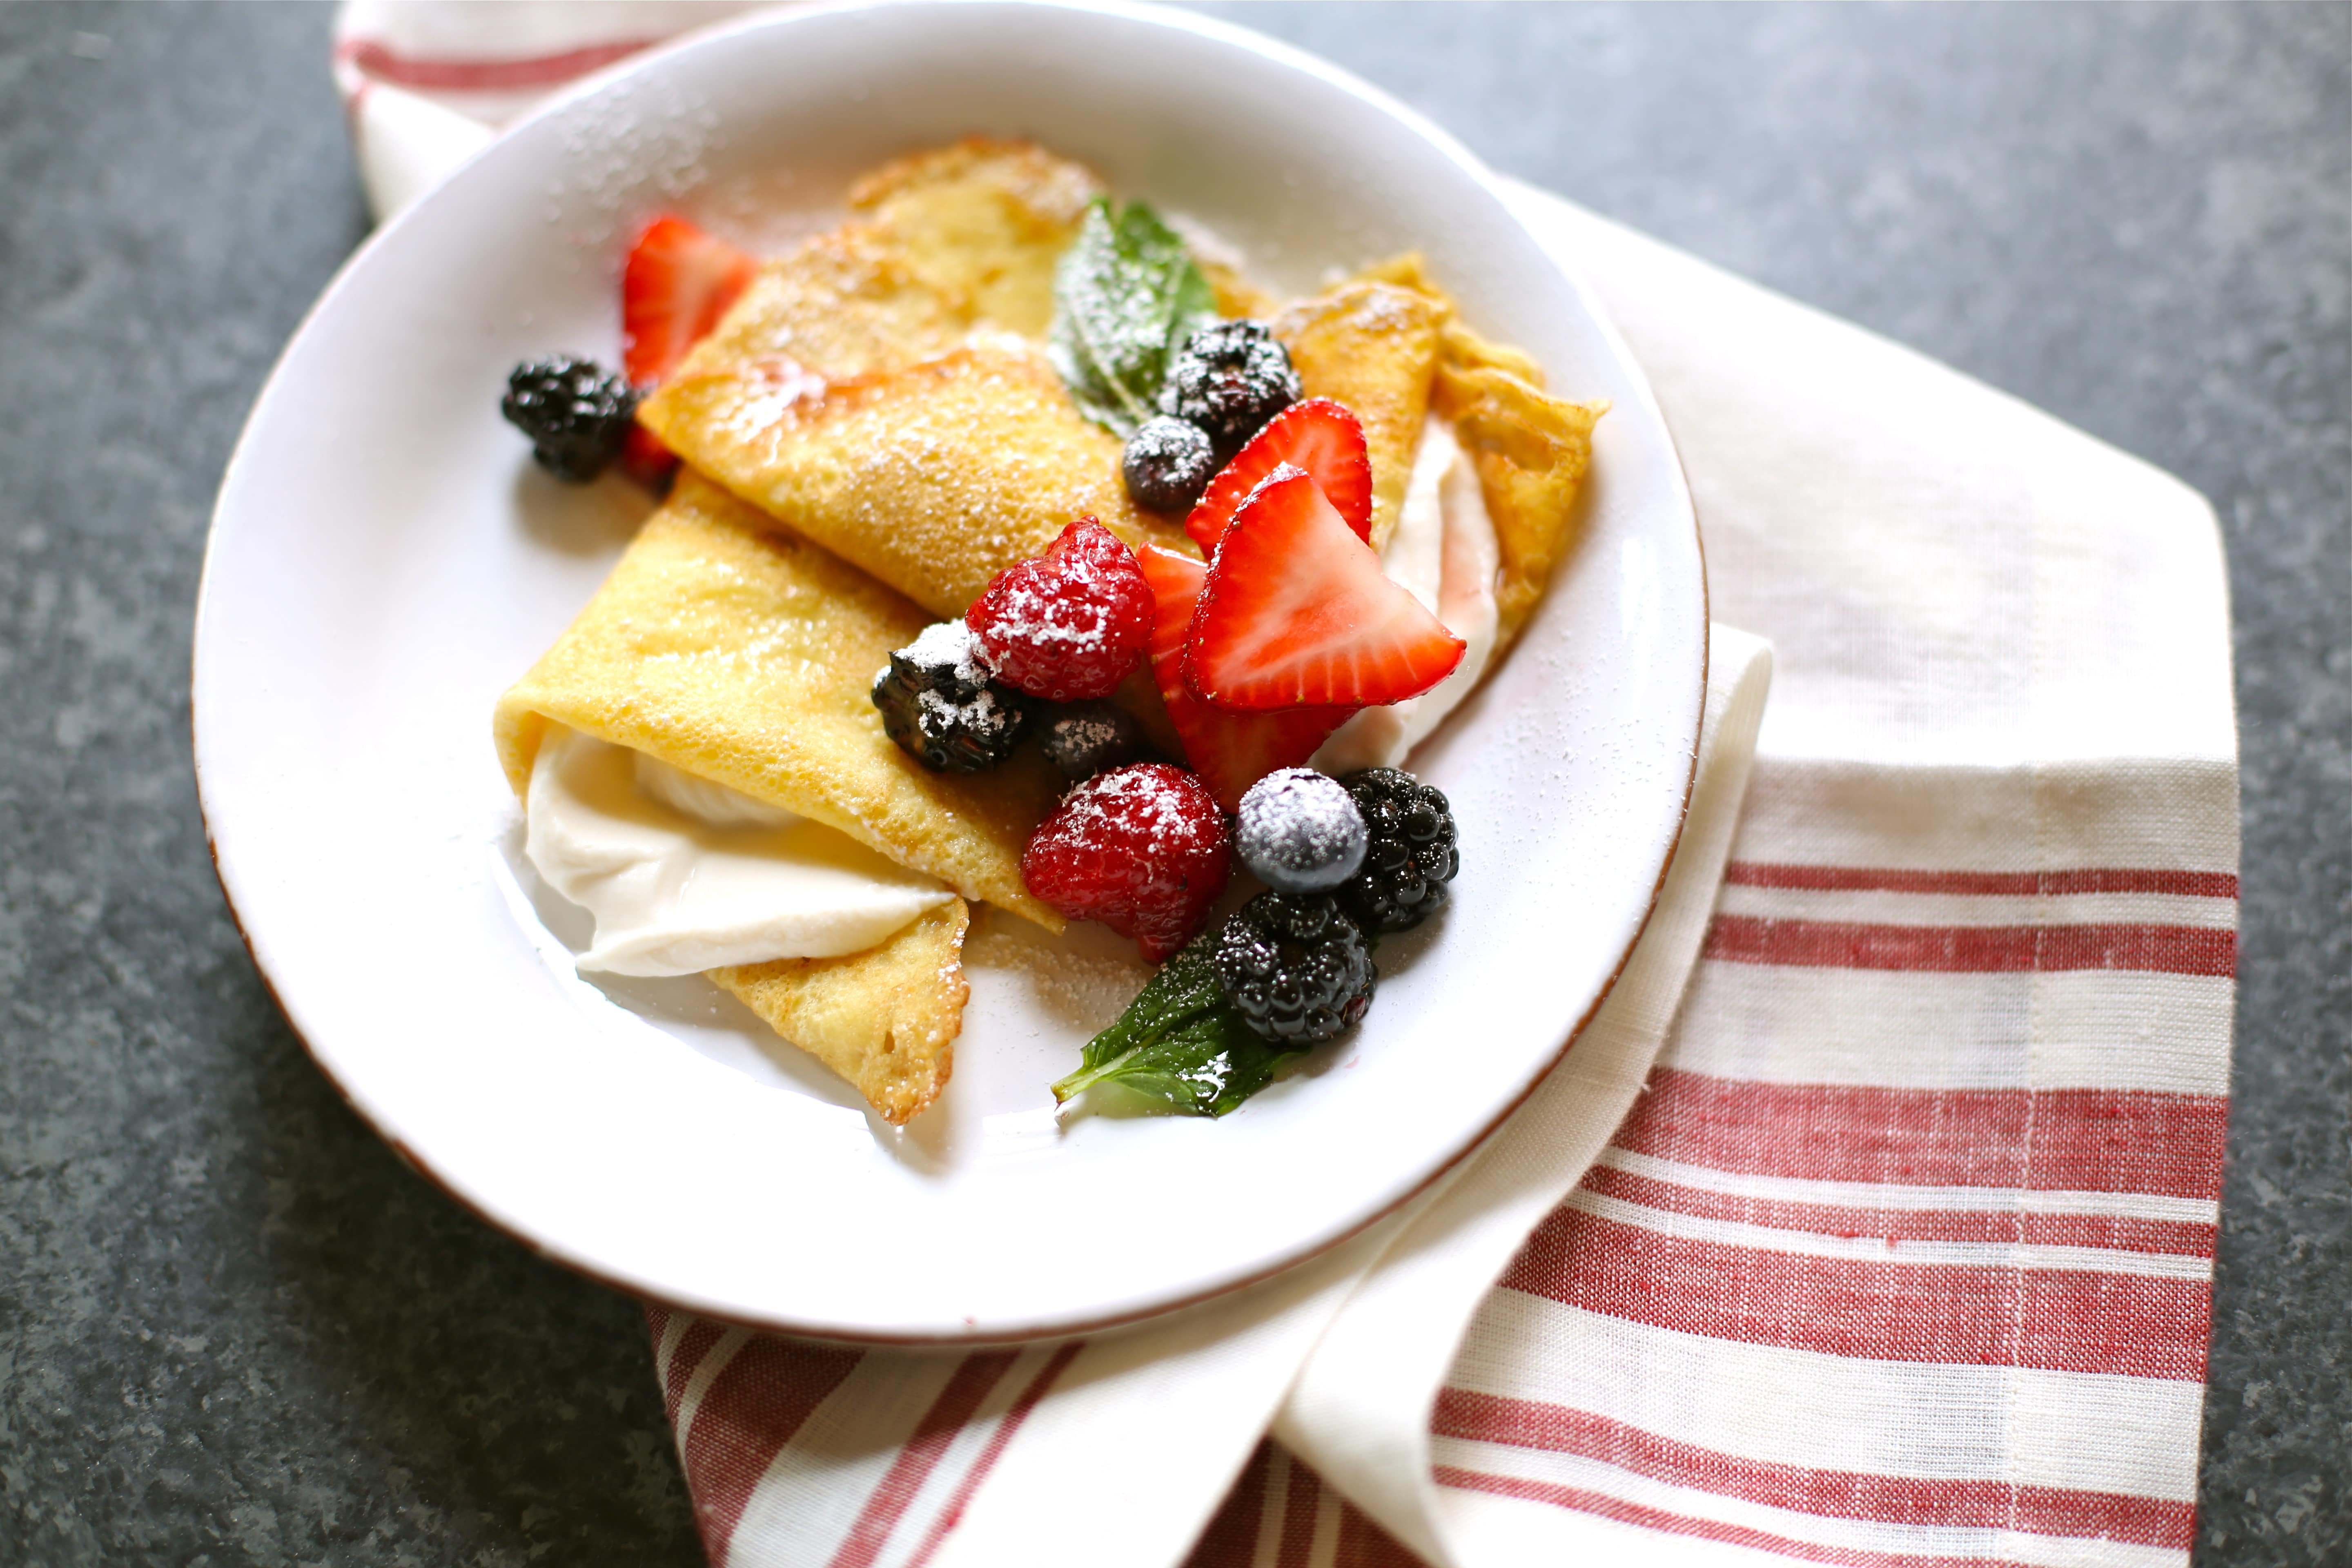 a plate of crepes with fresh fruit and cream on a black table with a striped red napkin.